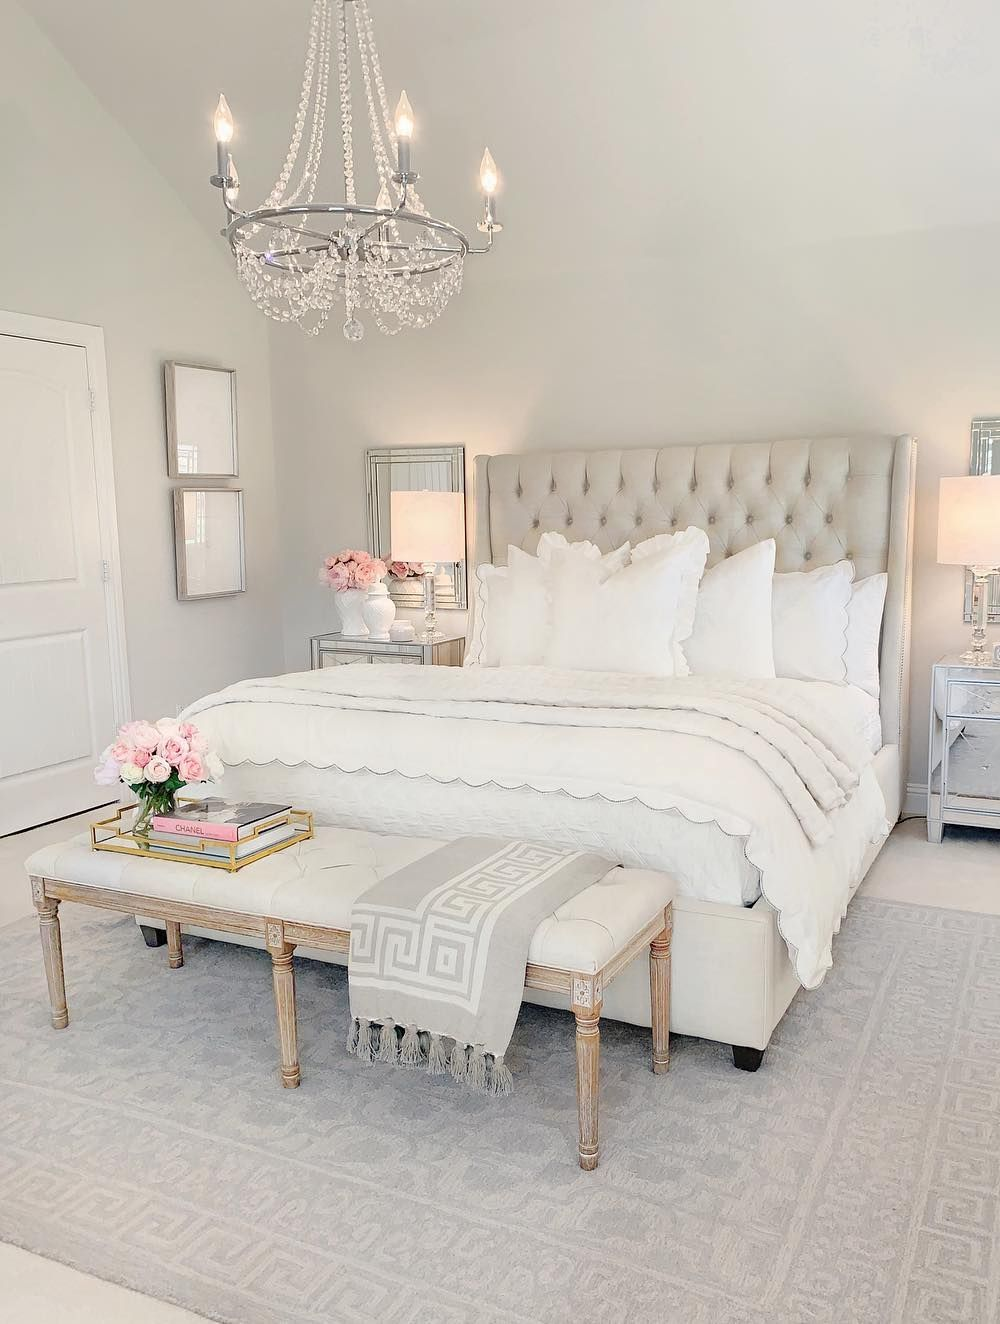 Neutral Beige Tufted Headboard In Bedroom With White Tufted End Of Bed Bench Via Thedecordiet Bedroom Interior Master Bedrooms Decor Home Decor Bedroom